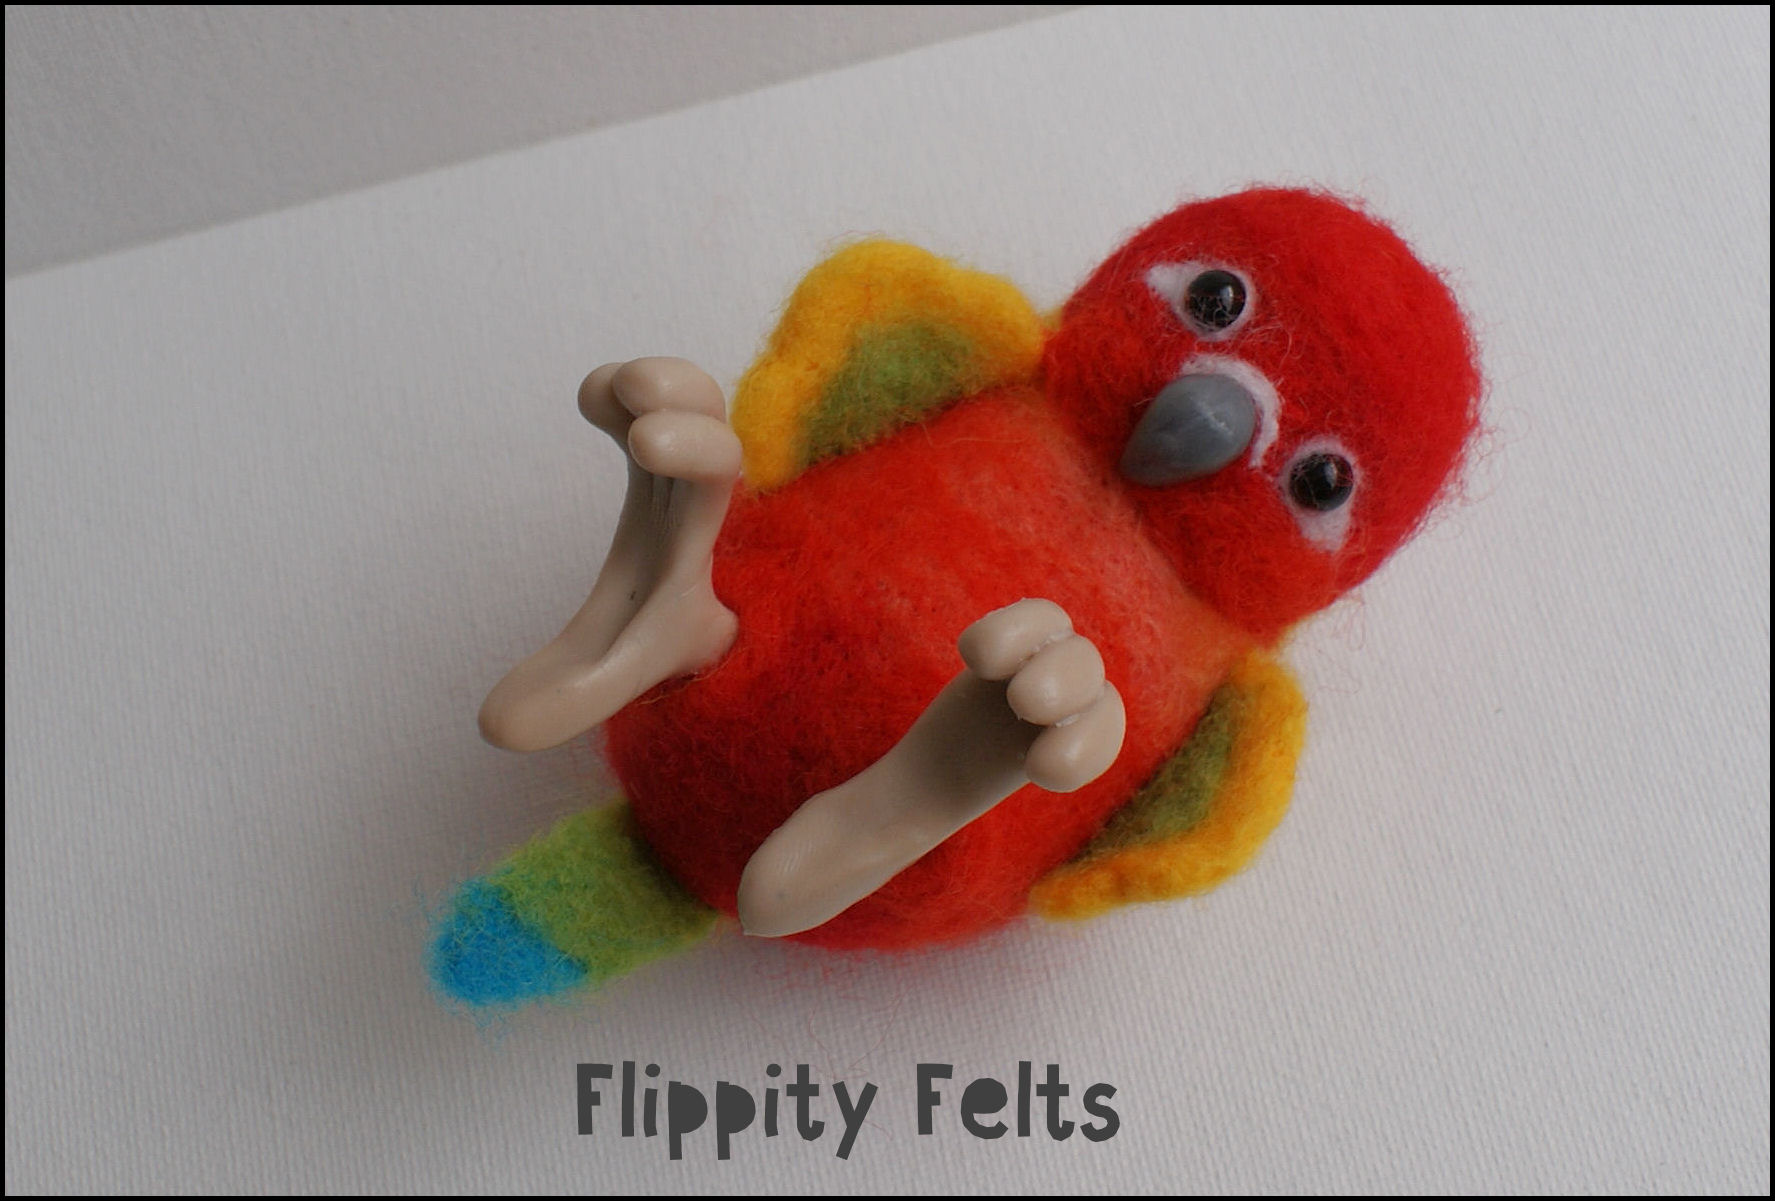 Red Factor Sun Conure Flippity Felts